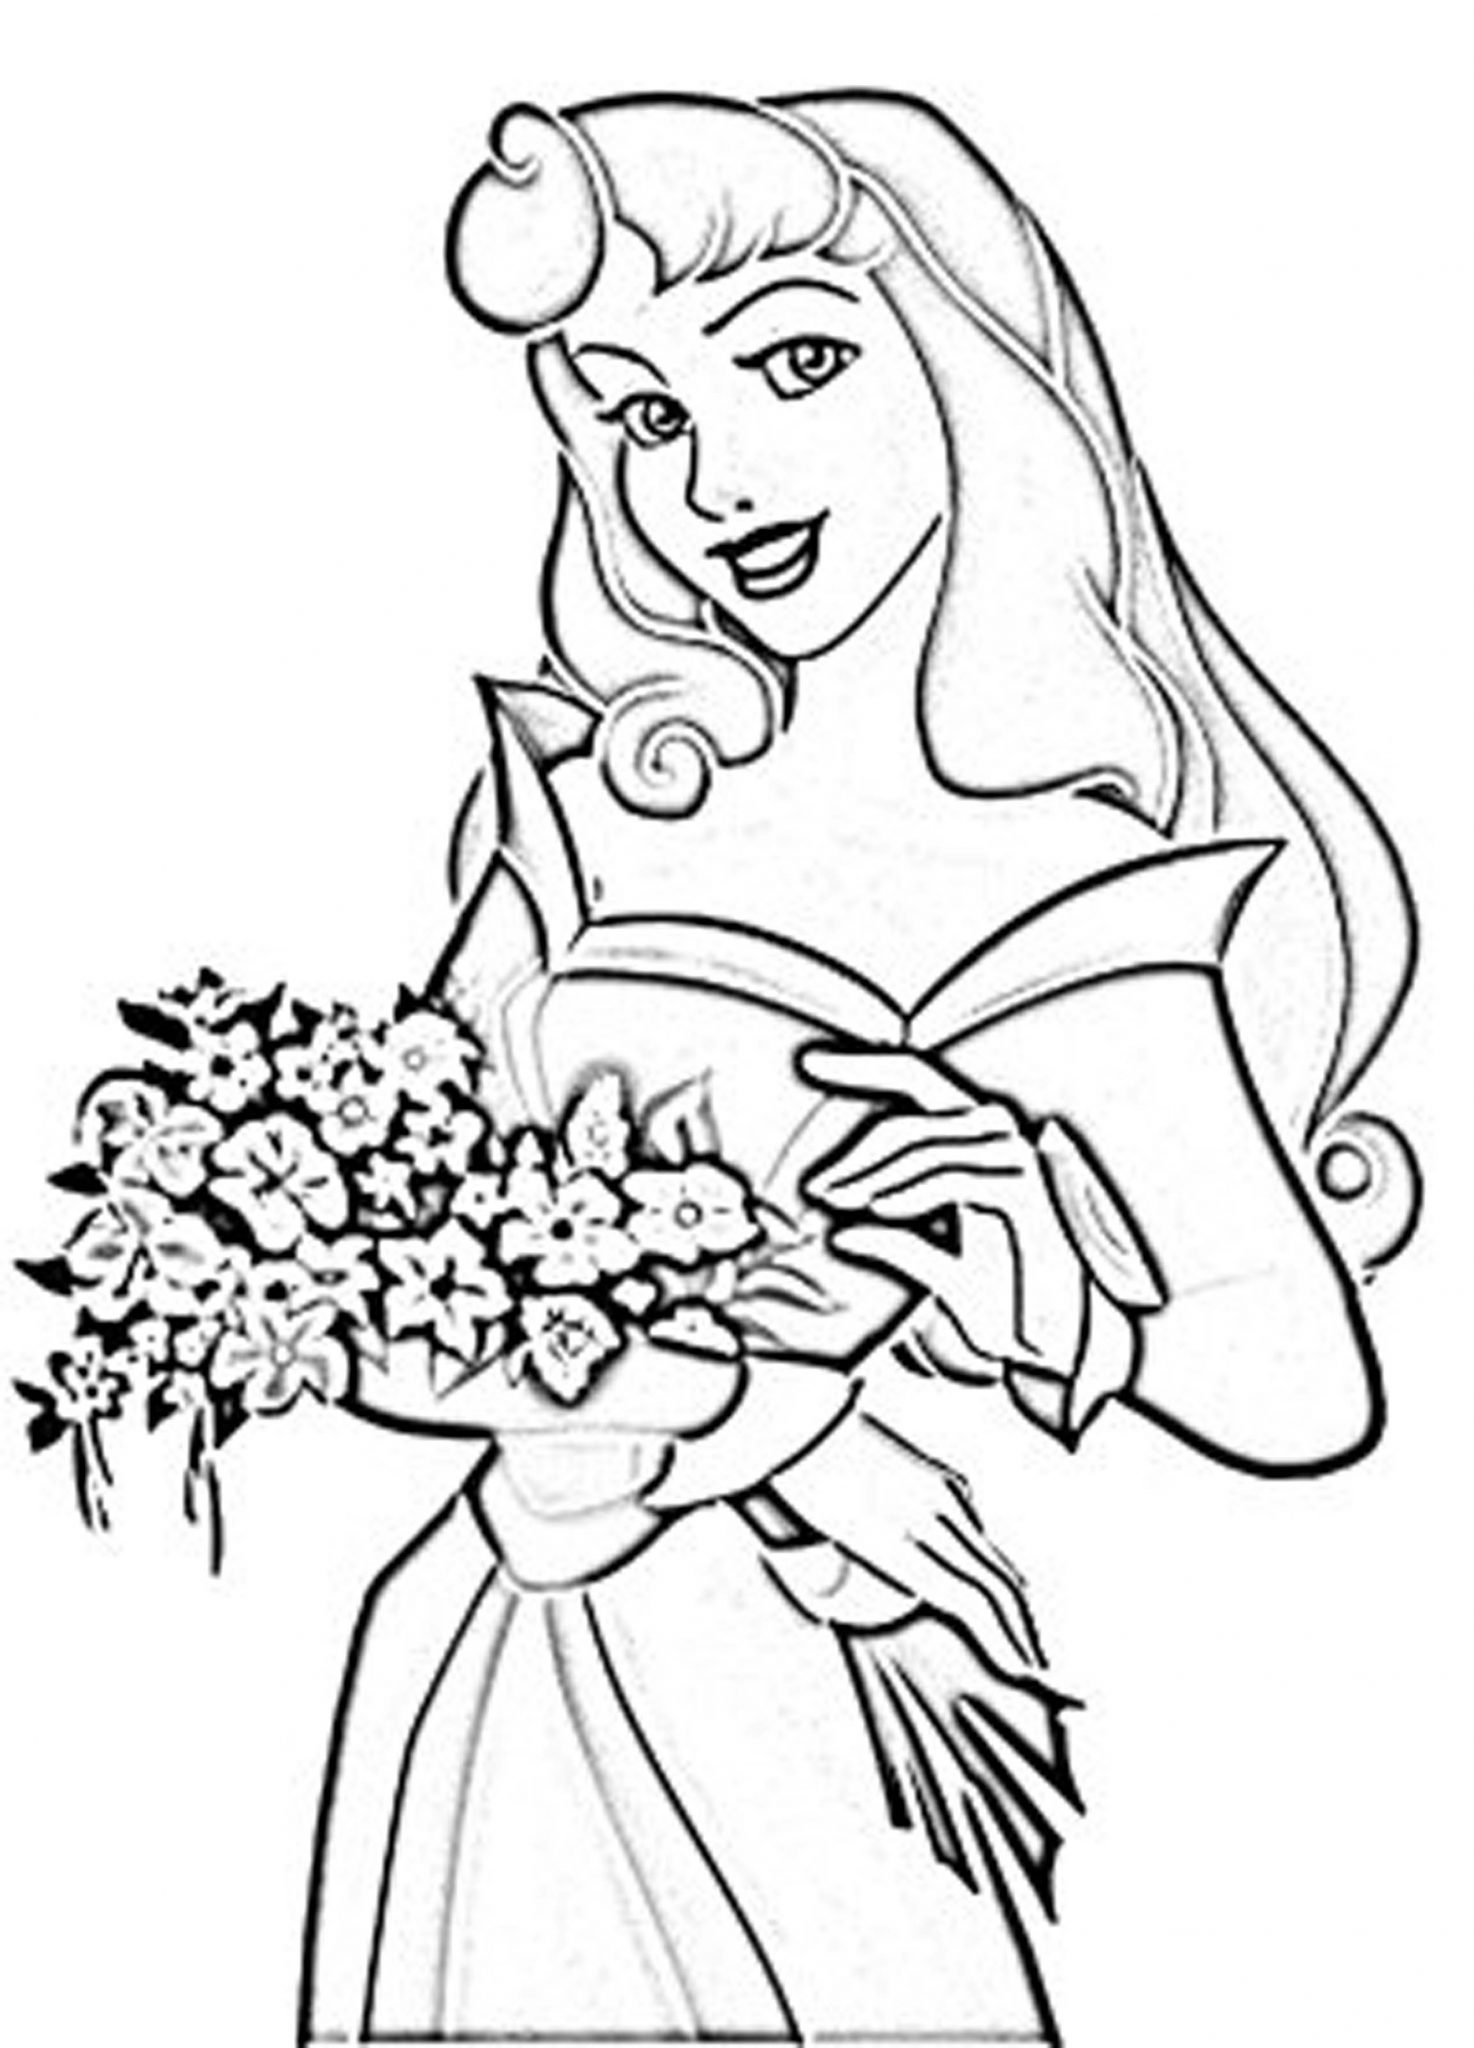 Princess jasmine coloring pages - Shop Now